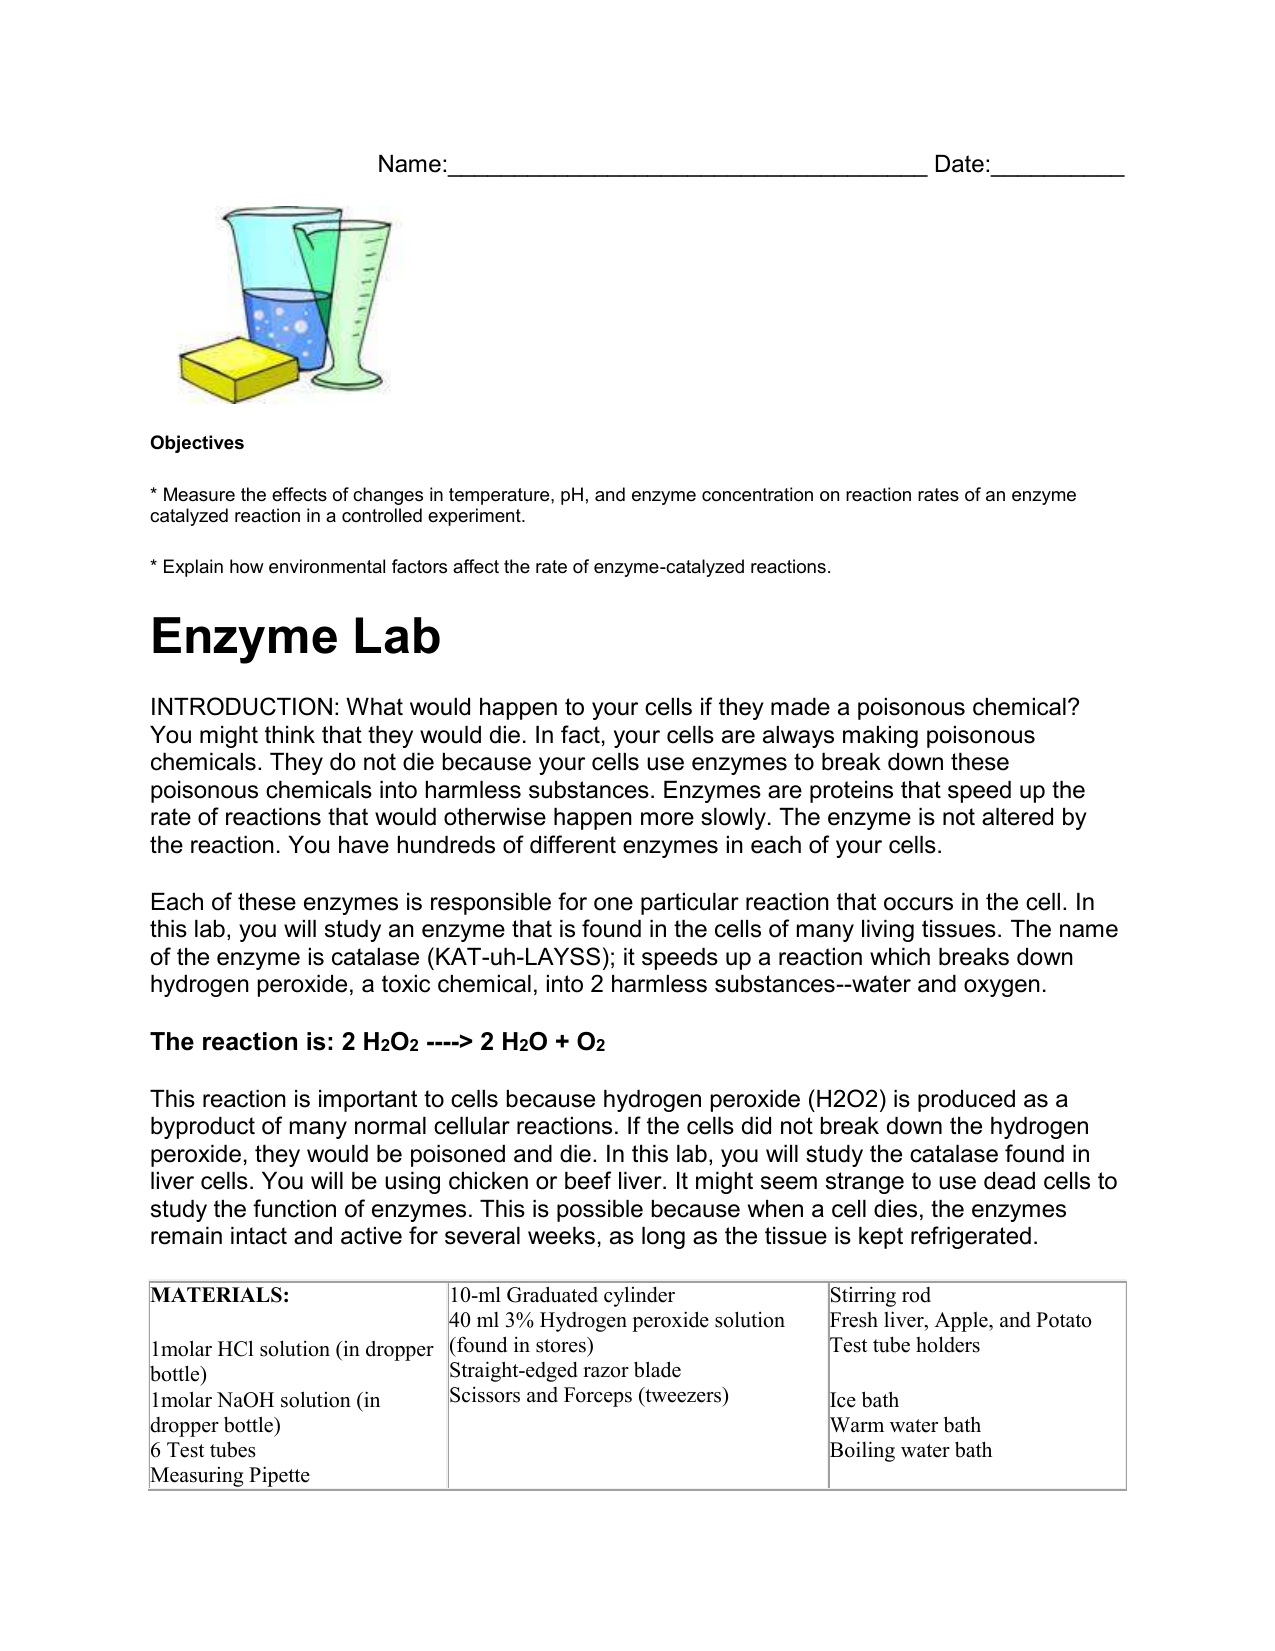 enzyme catecholase lab report Enzyme lab report or any similar topic specifically for you the magnesium and calcium that edta binds are the cofactors used by the enzymes of bacteria and fungi that can spoil food method in preparing the catecholase extract, a potato was skinned, washed, and then diced.